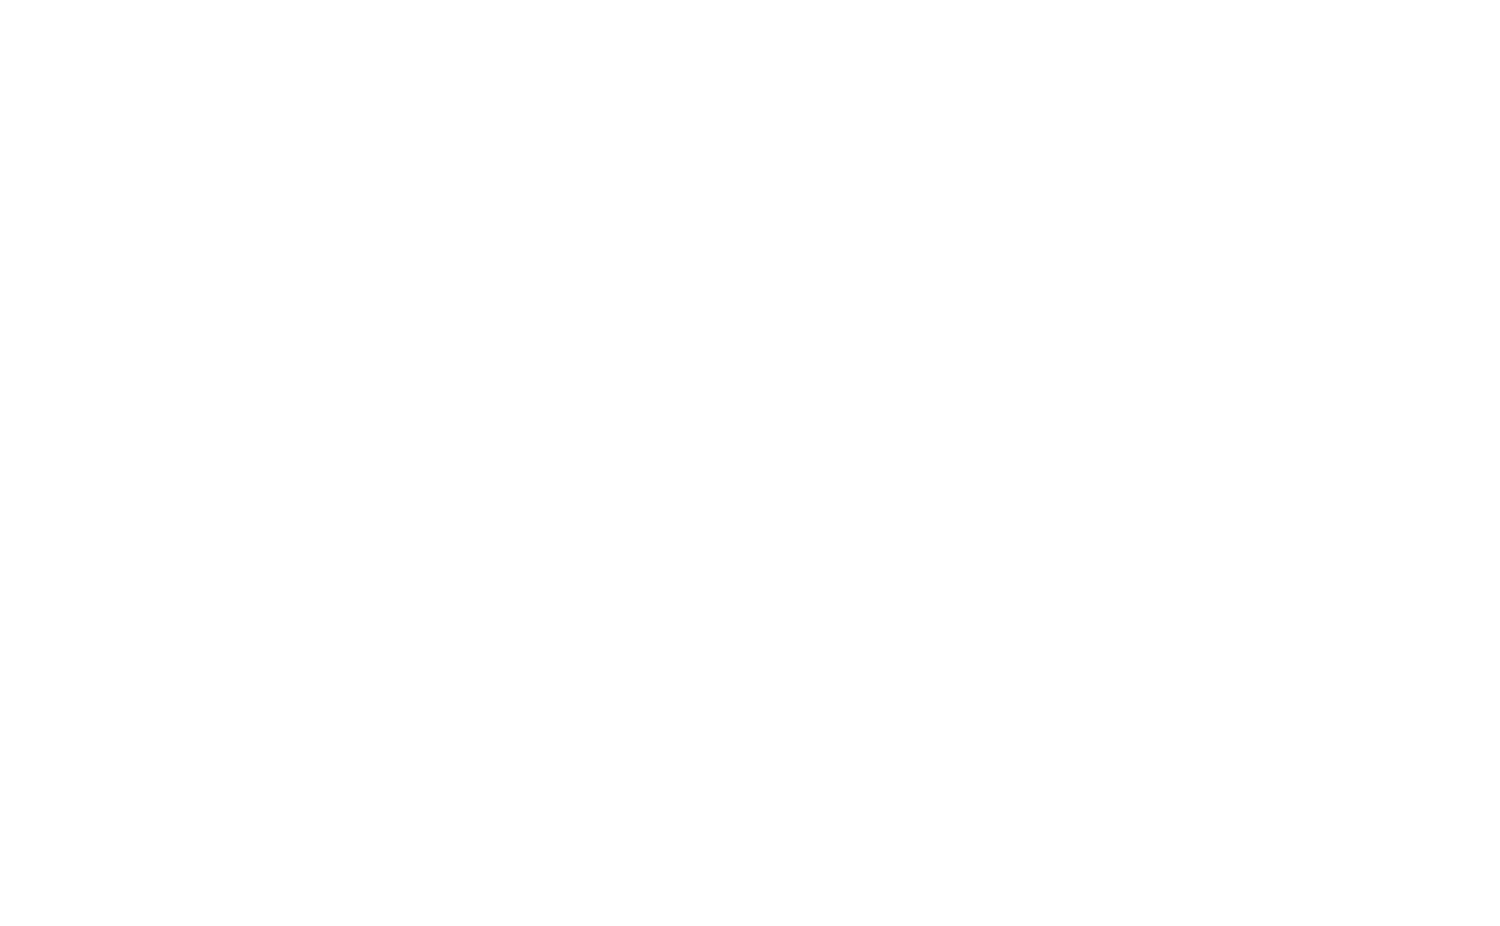 POUR PEOPLE